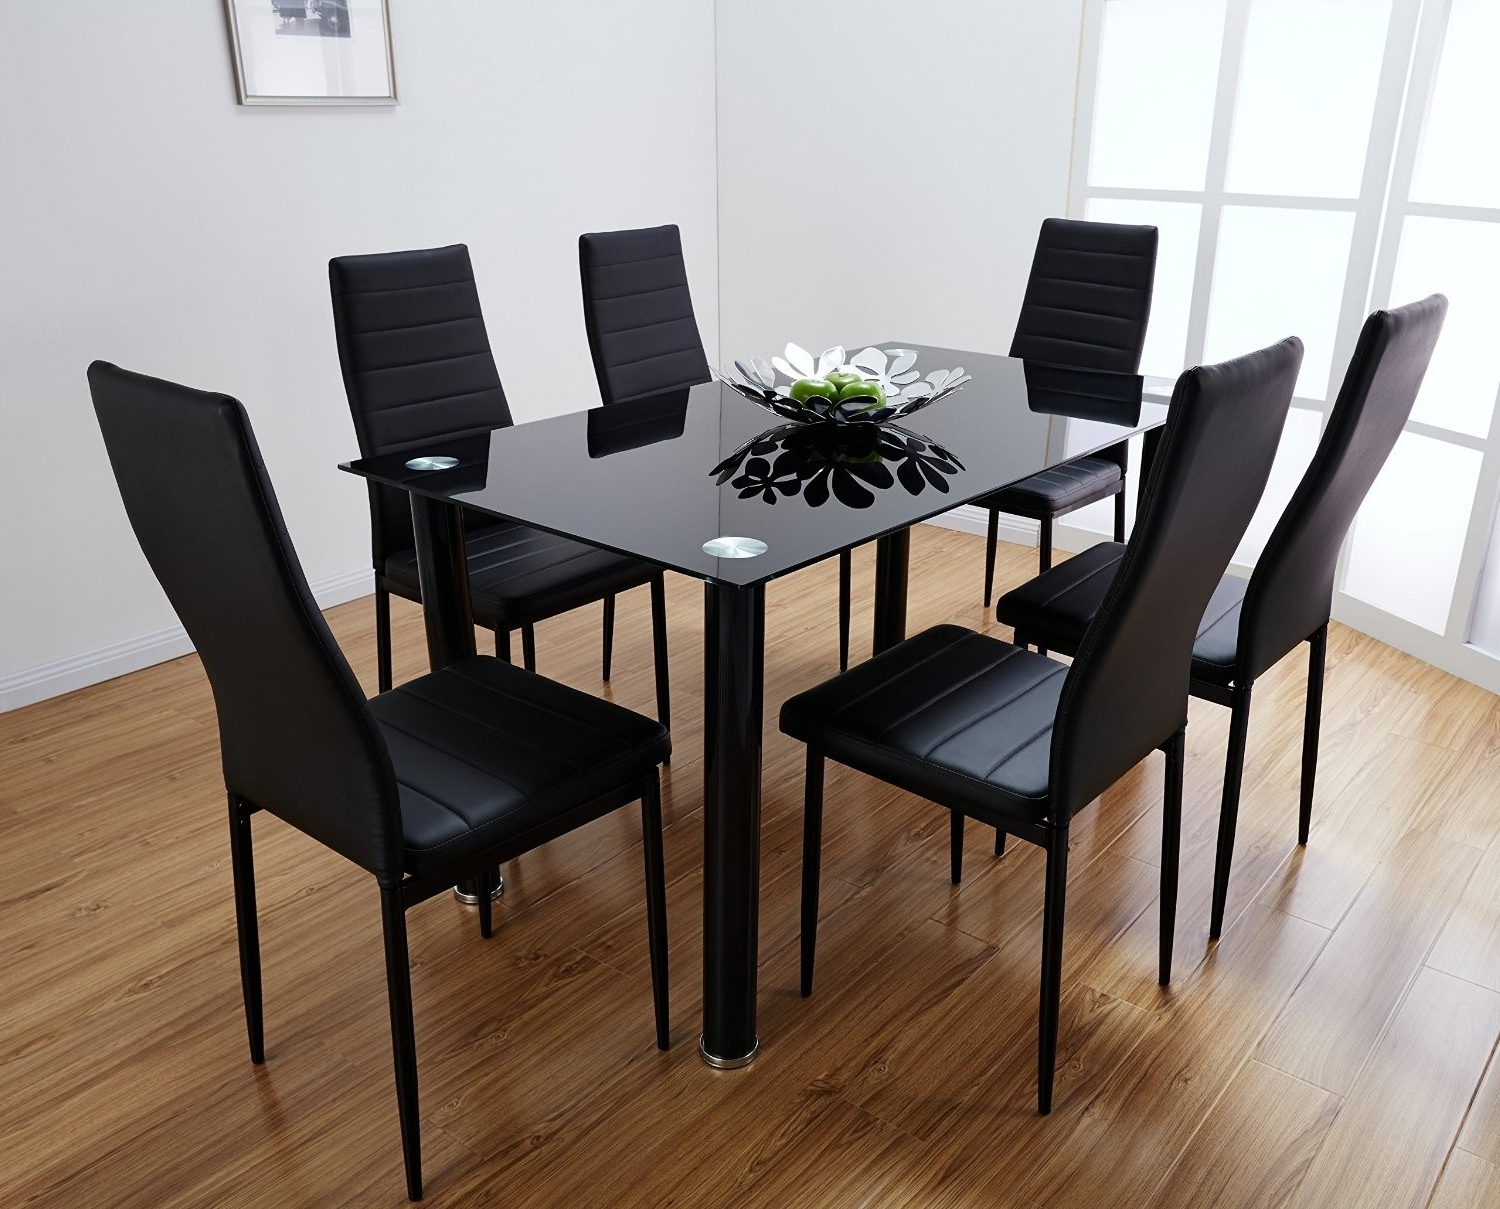 Black Glass Dining Table Decorating Ideas With 4 Chairs – Home Decor With Newest Dining Tables Black Glass (View 8 of 25)